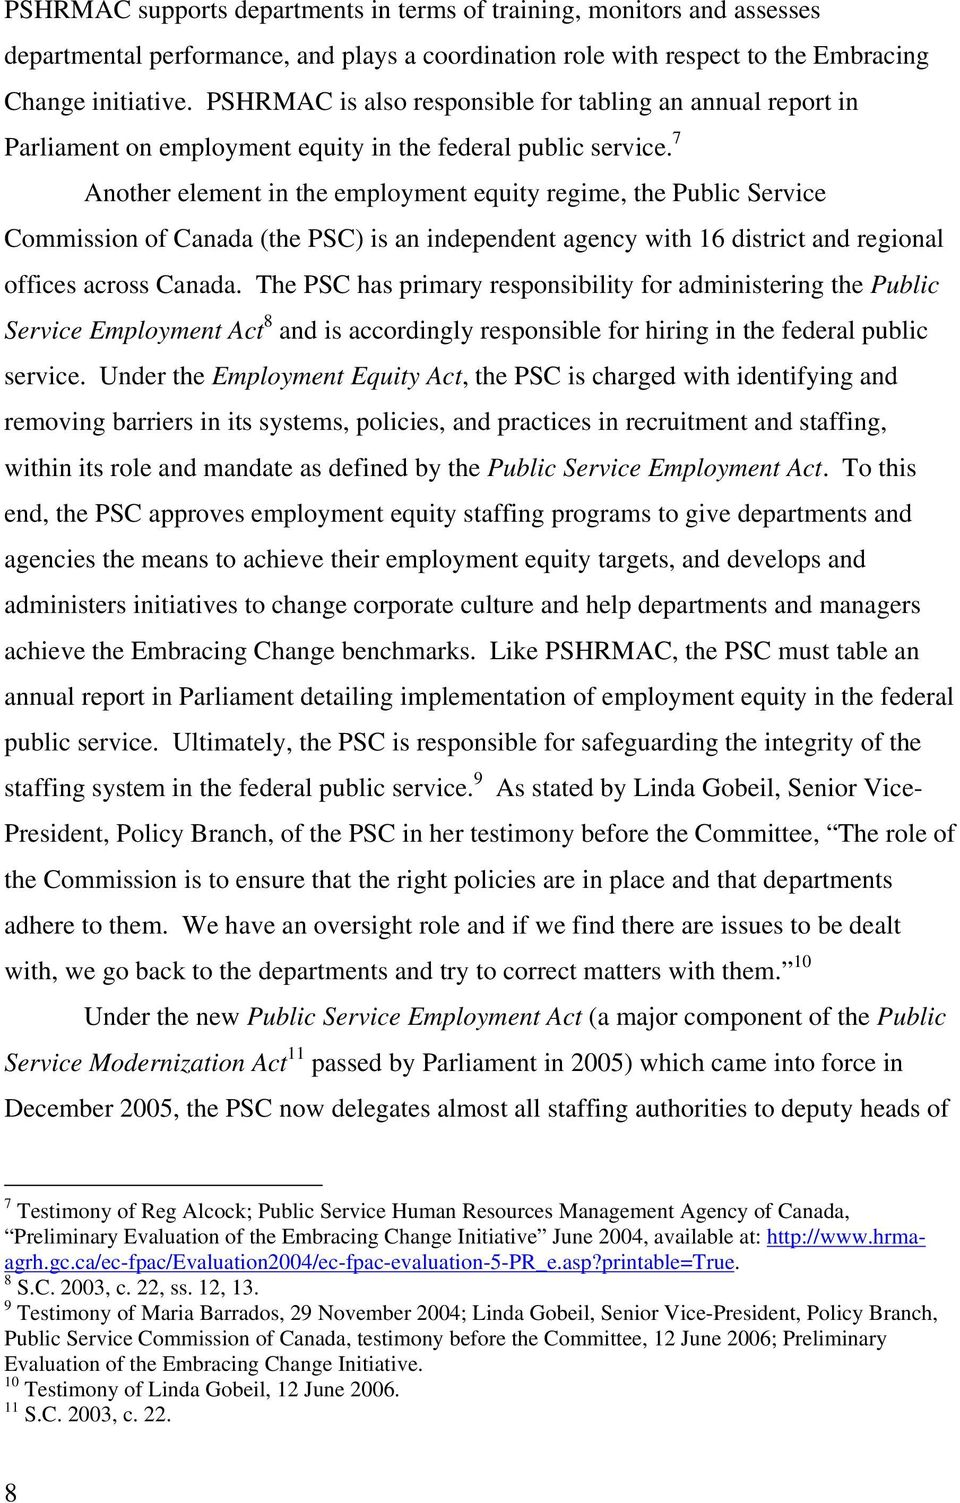 7 Another element in the employment equity regime, the Public Service Commission of Canada (the PSC) is an independent agency with 16 district and regional offices across Canada.